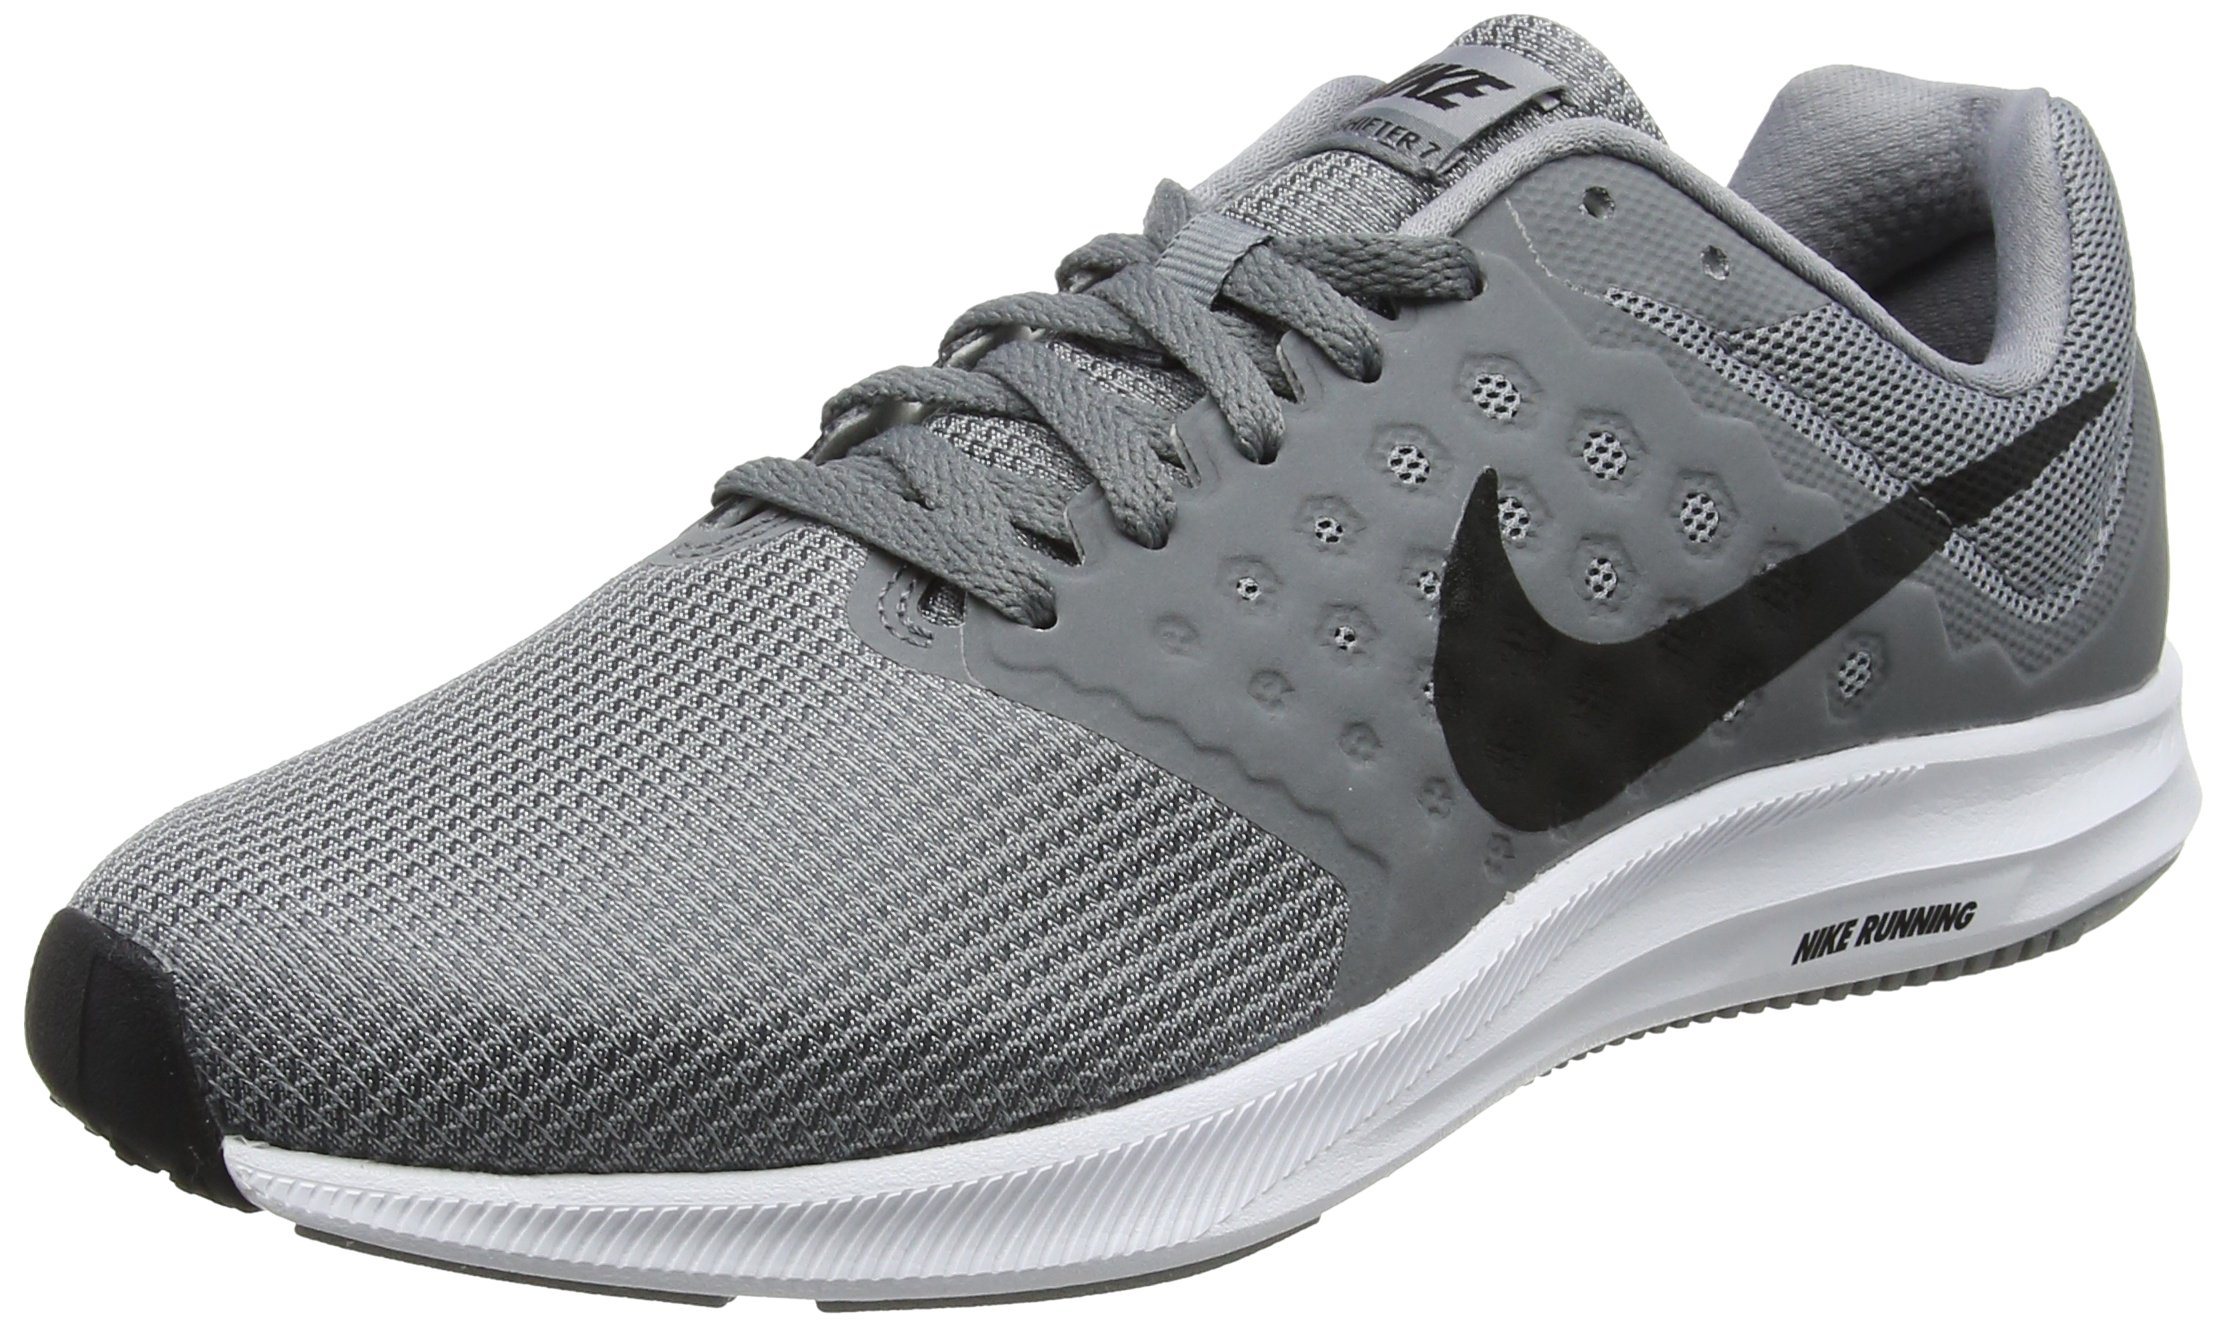 9e2b2a8bf60f9 Galleon - Nike Men s Downshifter 7 Running Shoe Stealth Black Cool Grey White  Size 12 M US